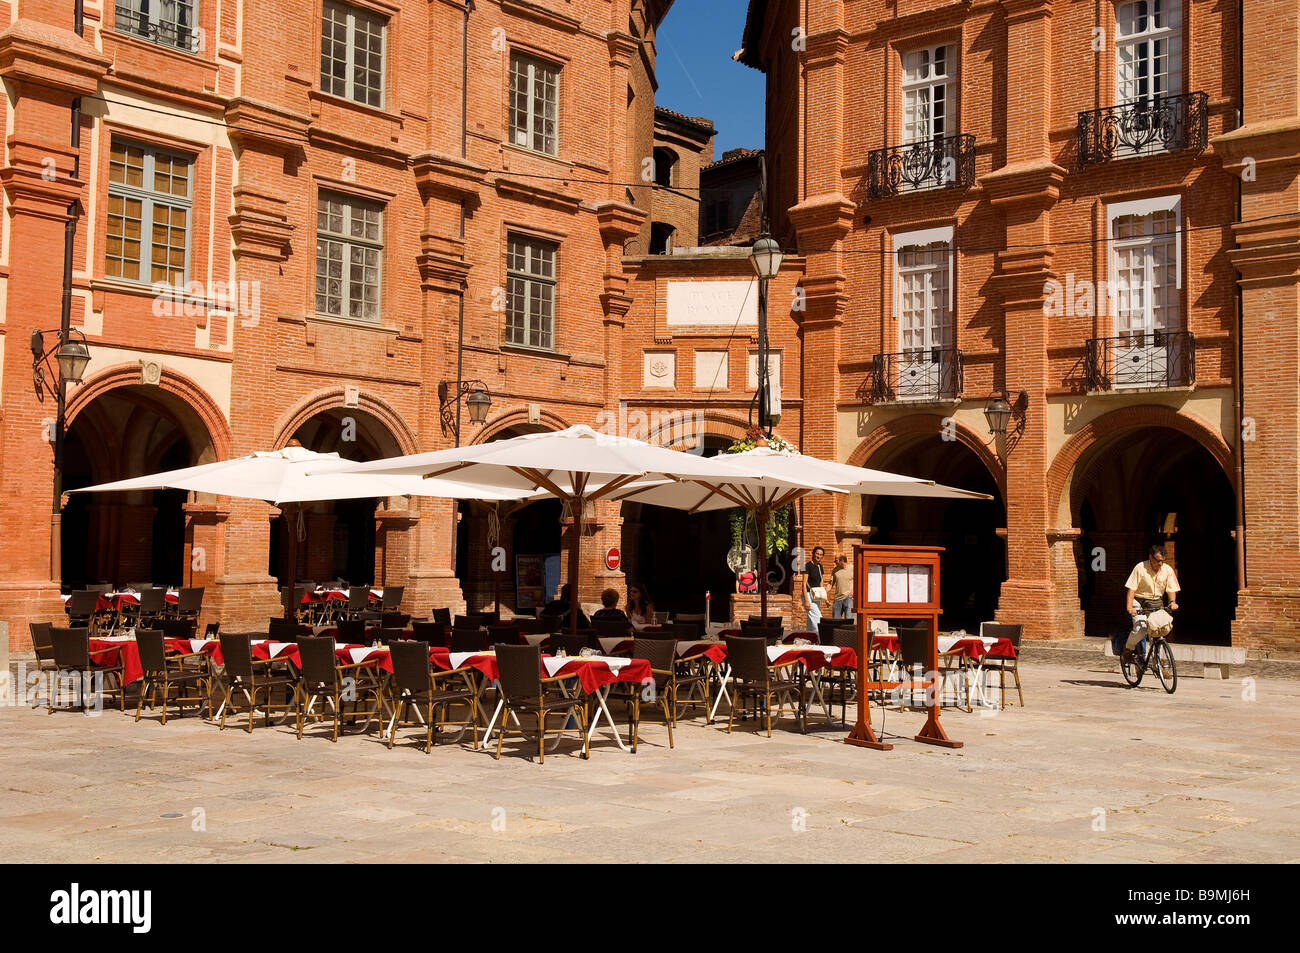 France, Tarn et Garonne, Montauban, National square (place Nationale) - Stock Image